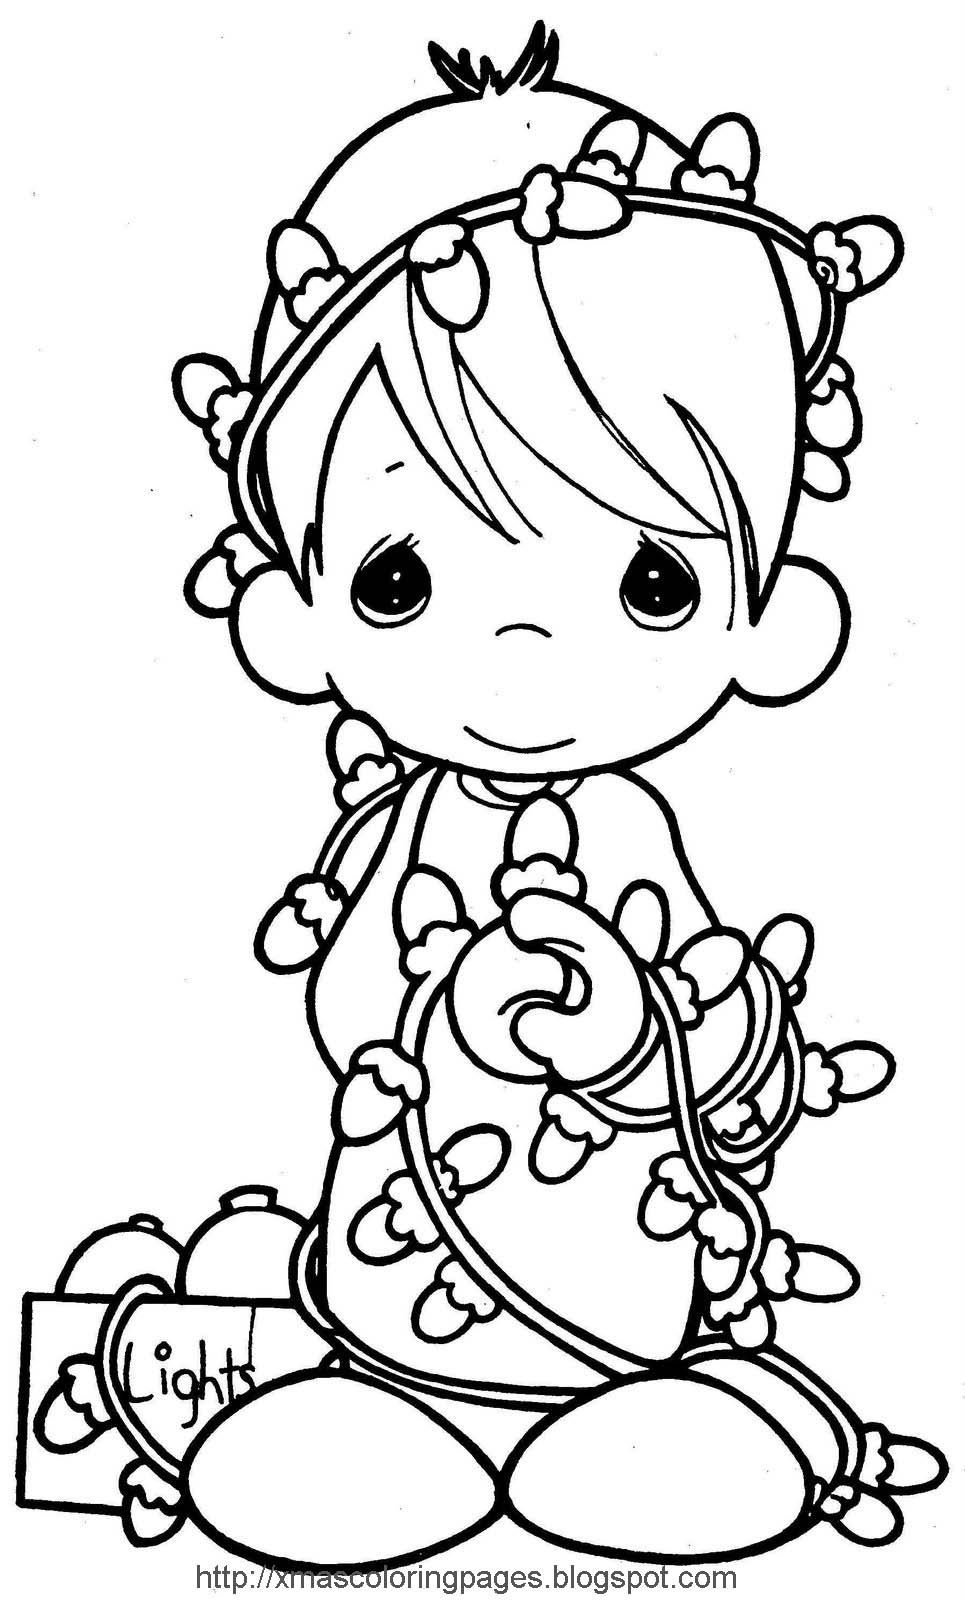 Xmas Coloring Pages: Angel Coloring Page | Color Sheets | Precious - Xmas Coloring Pages Free Printable